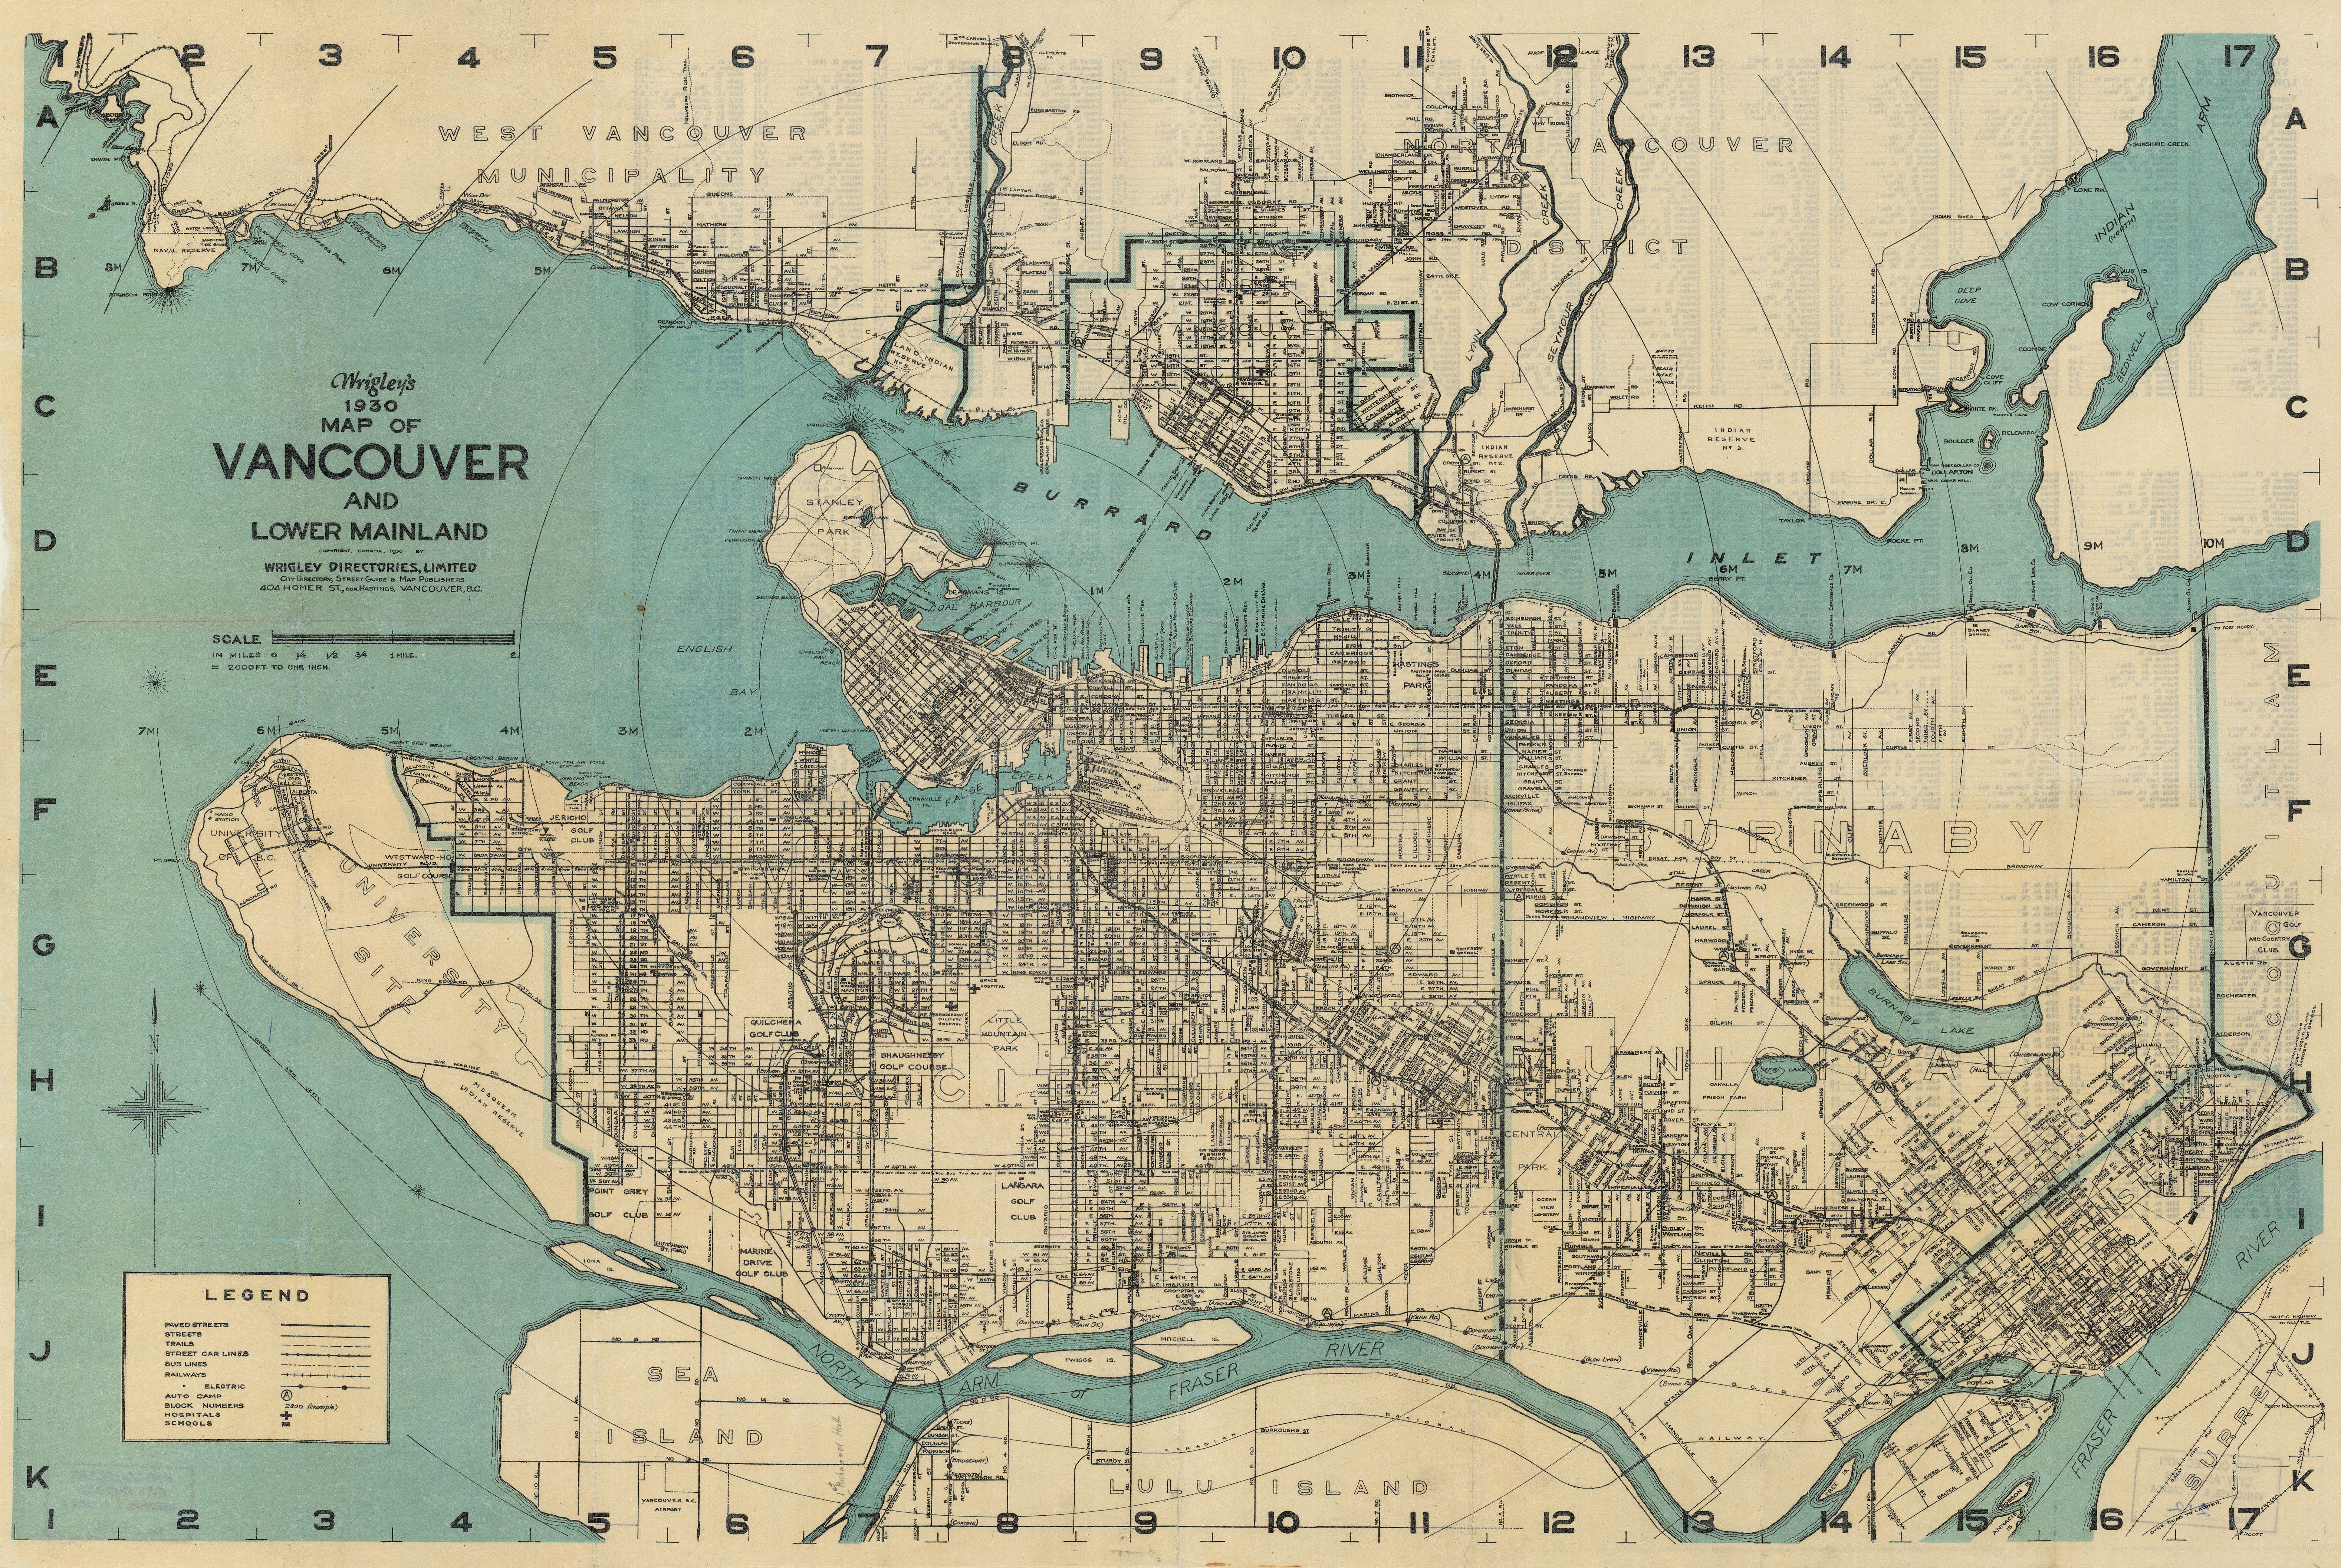 Wrigleys 1930 map of Vancouver and Lower Mainland  City